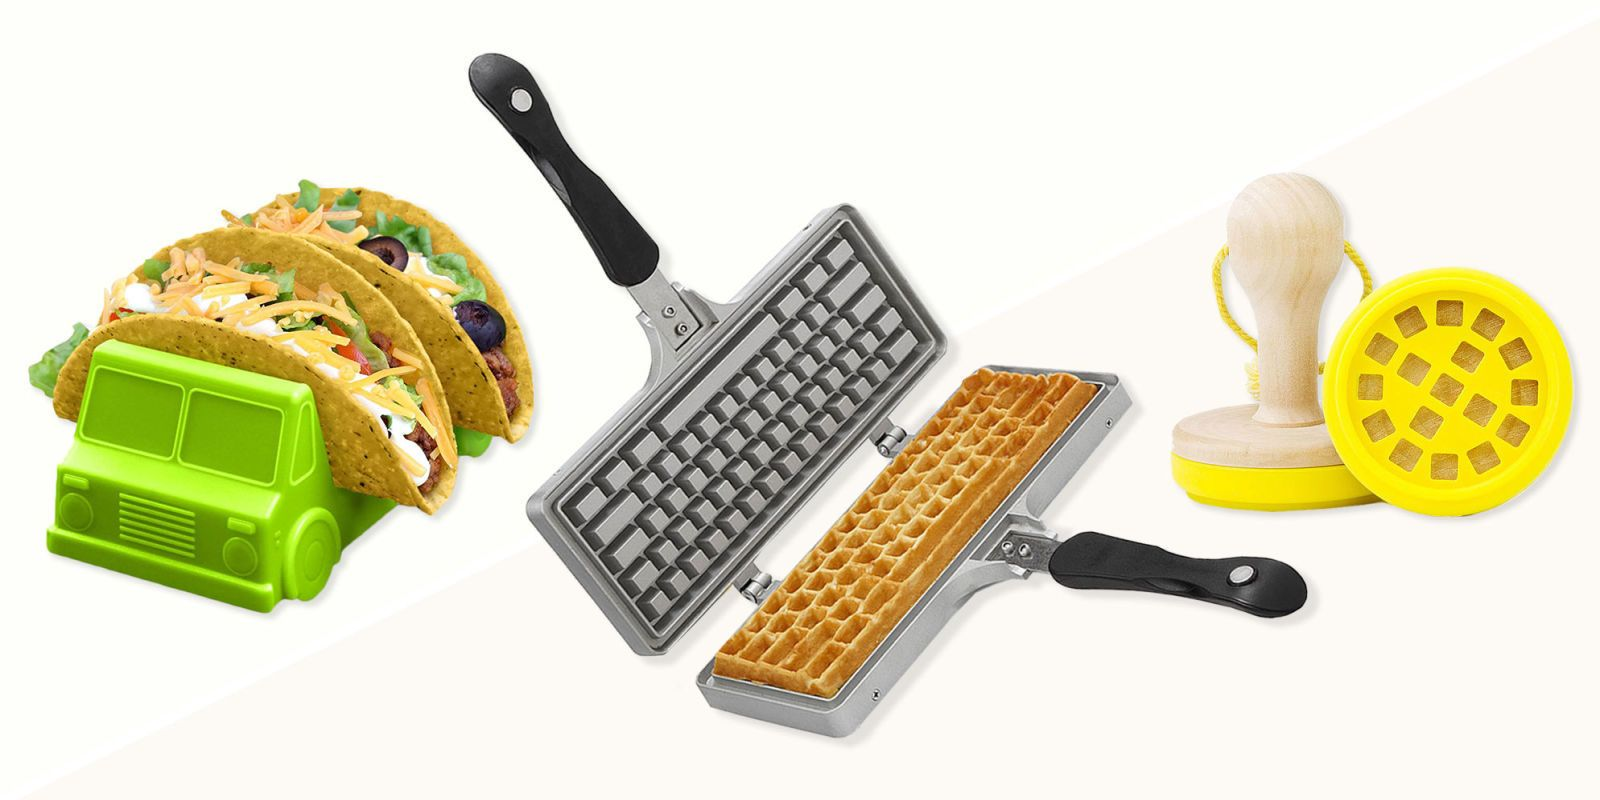 29 Cool and Quirky Kitchen Gadgets You'll Actually Want to Use